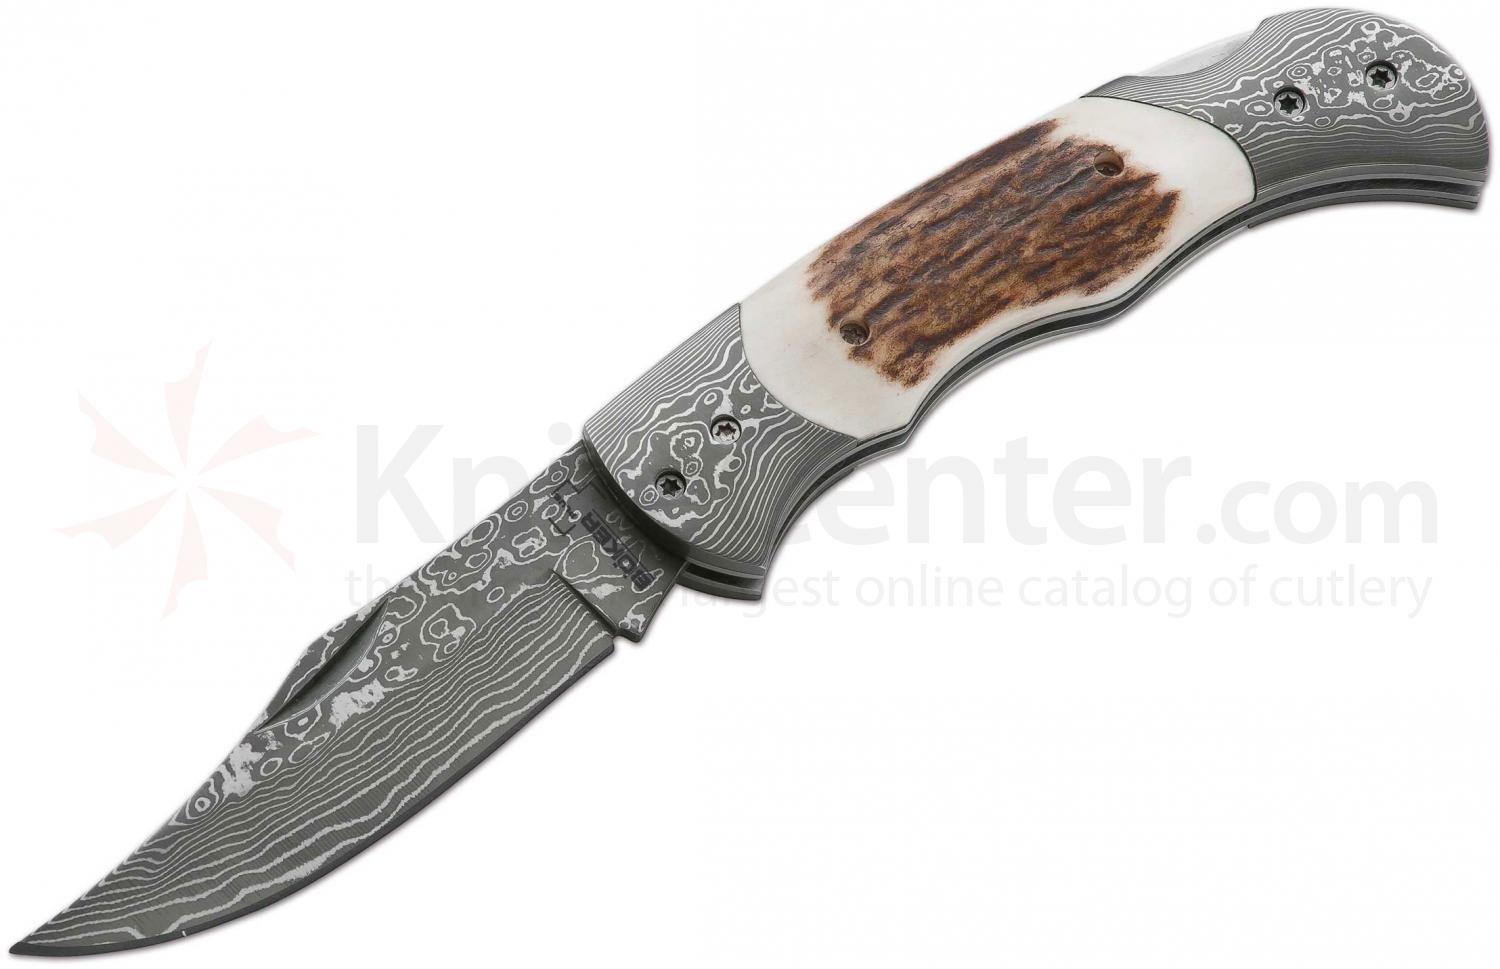 Boker Plus Damascus Traditional Folder 3-1/8 inch Blade, Stag and Damascus Handles (01BO028DAM)